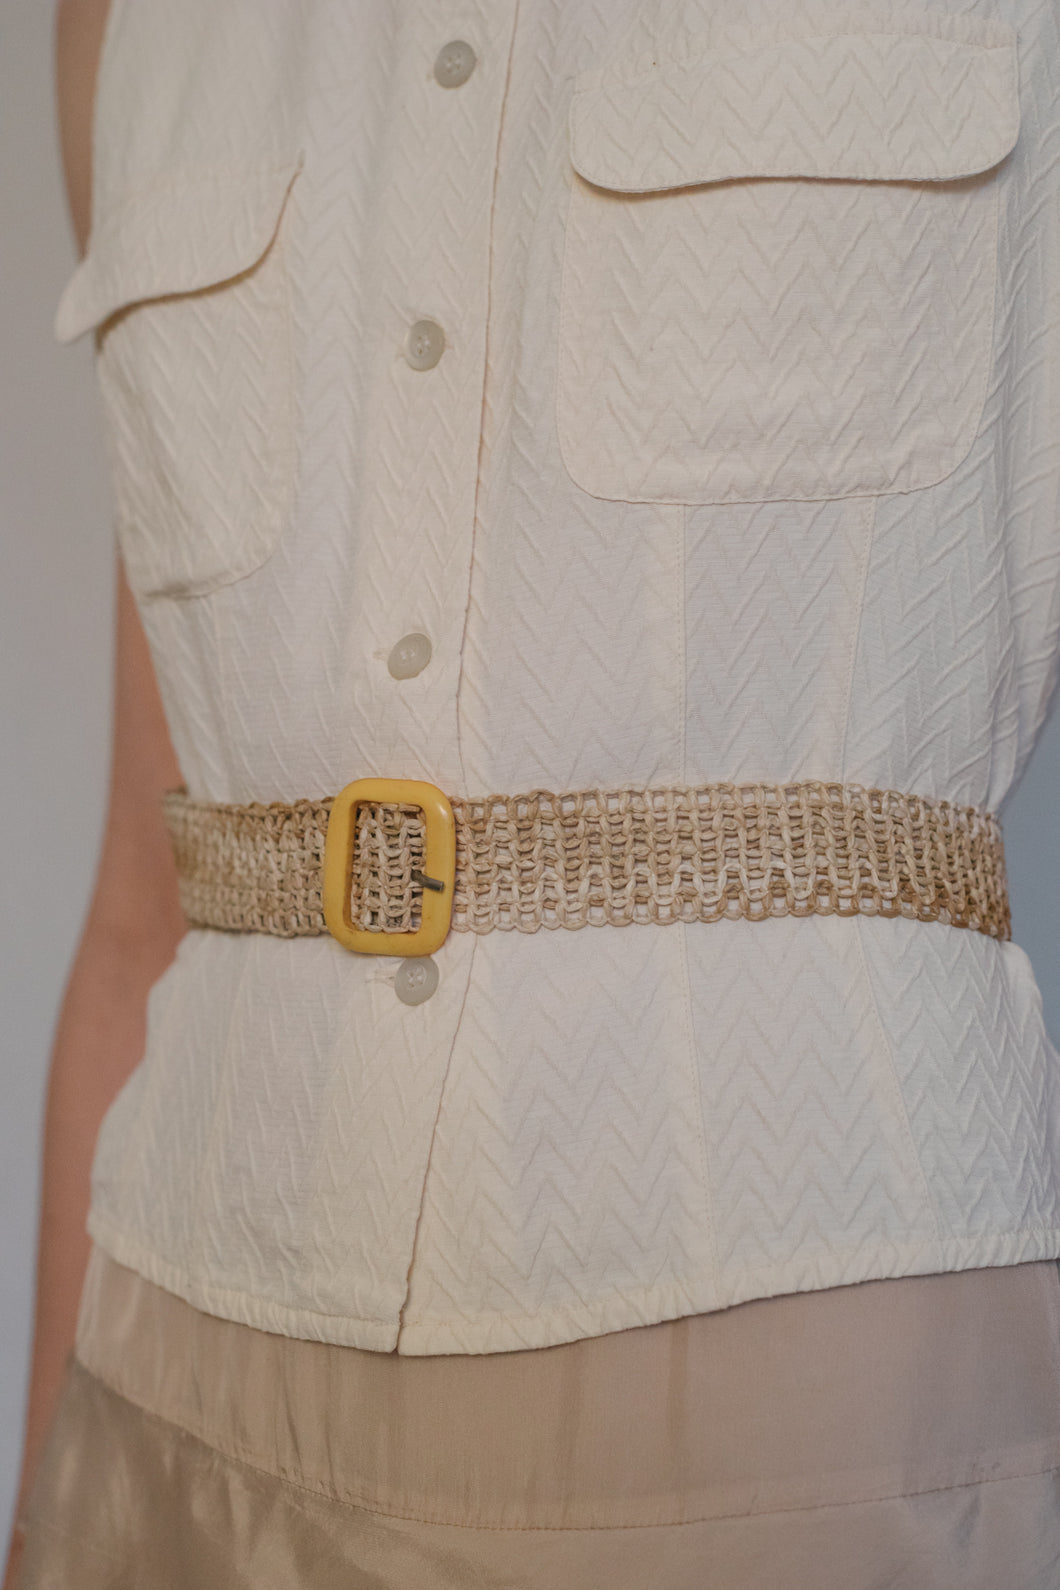 Woven Straw Belt - Studio Travel